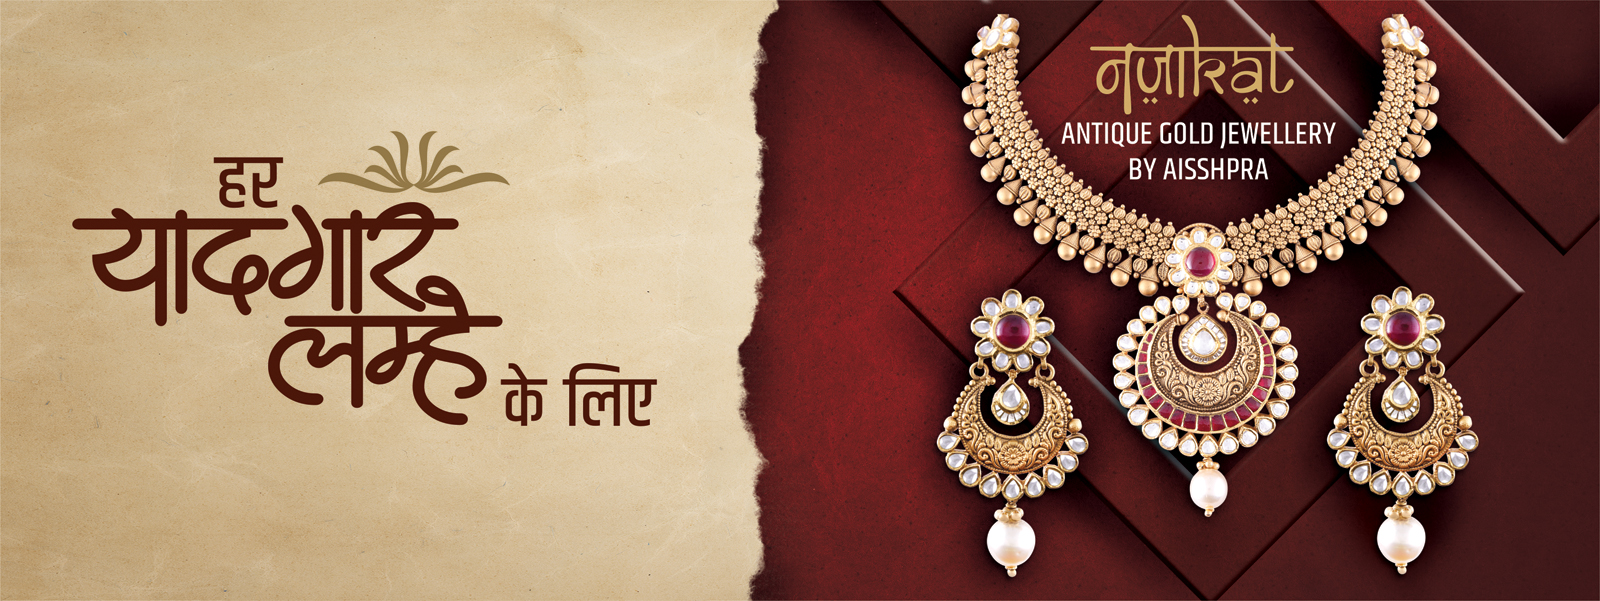 Antique Gold jewellery in Gorakhpur